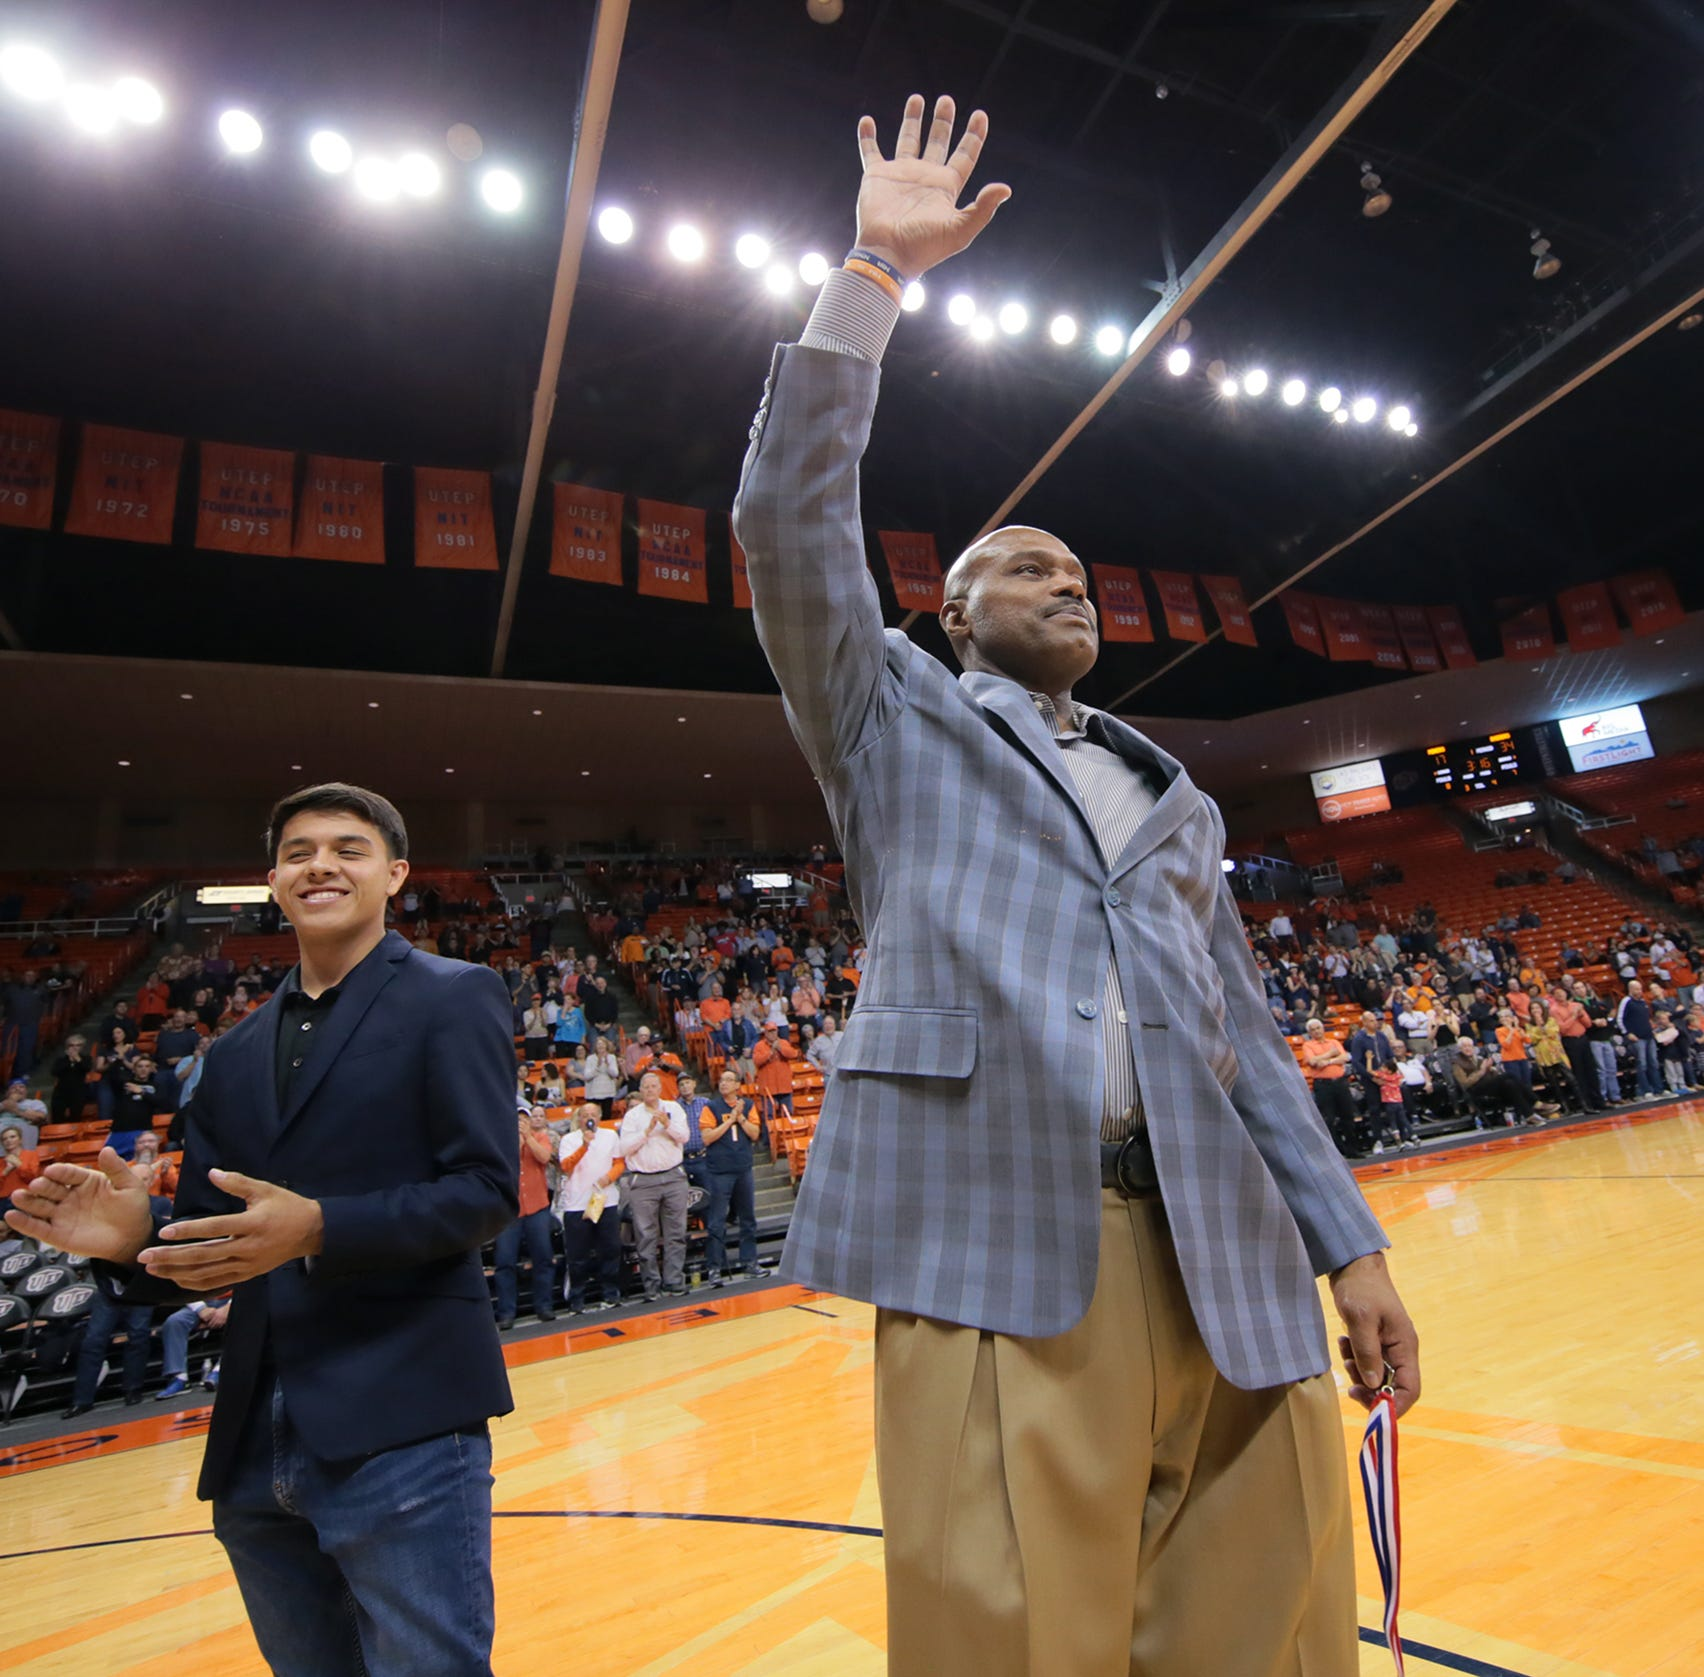 UTEP Miners blown out by Middle Tennessee in final home basketball game of season